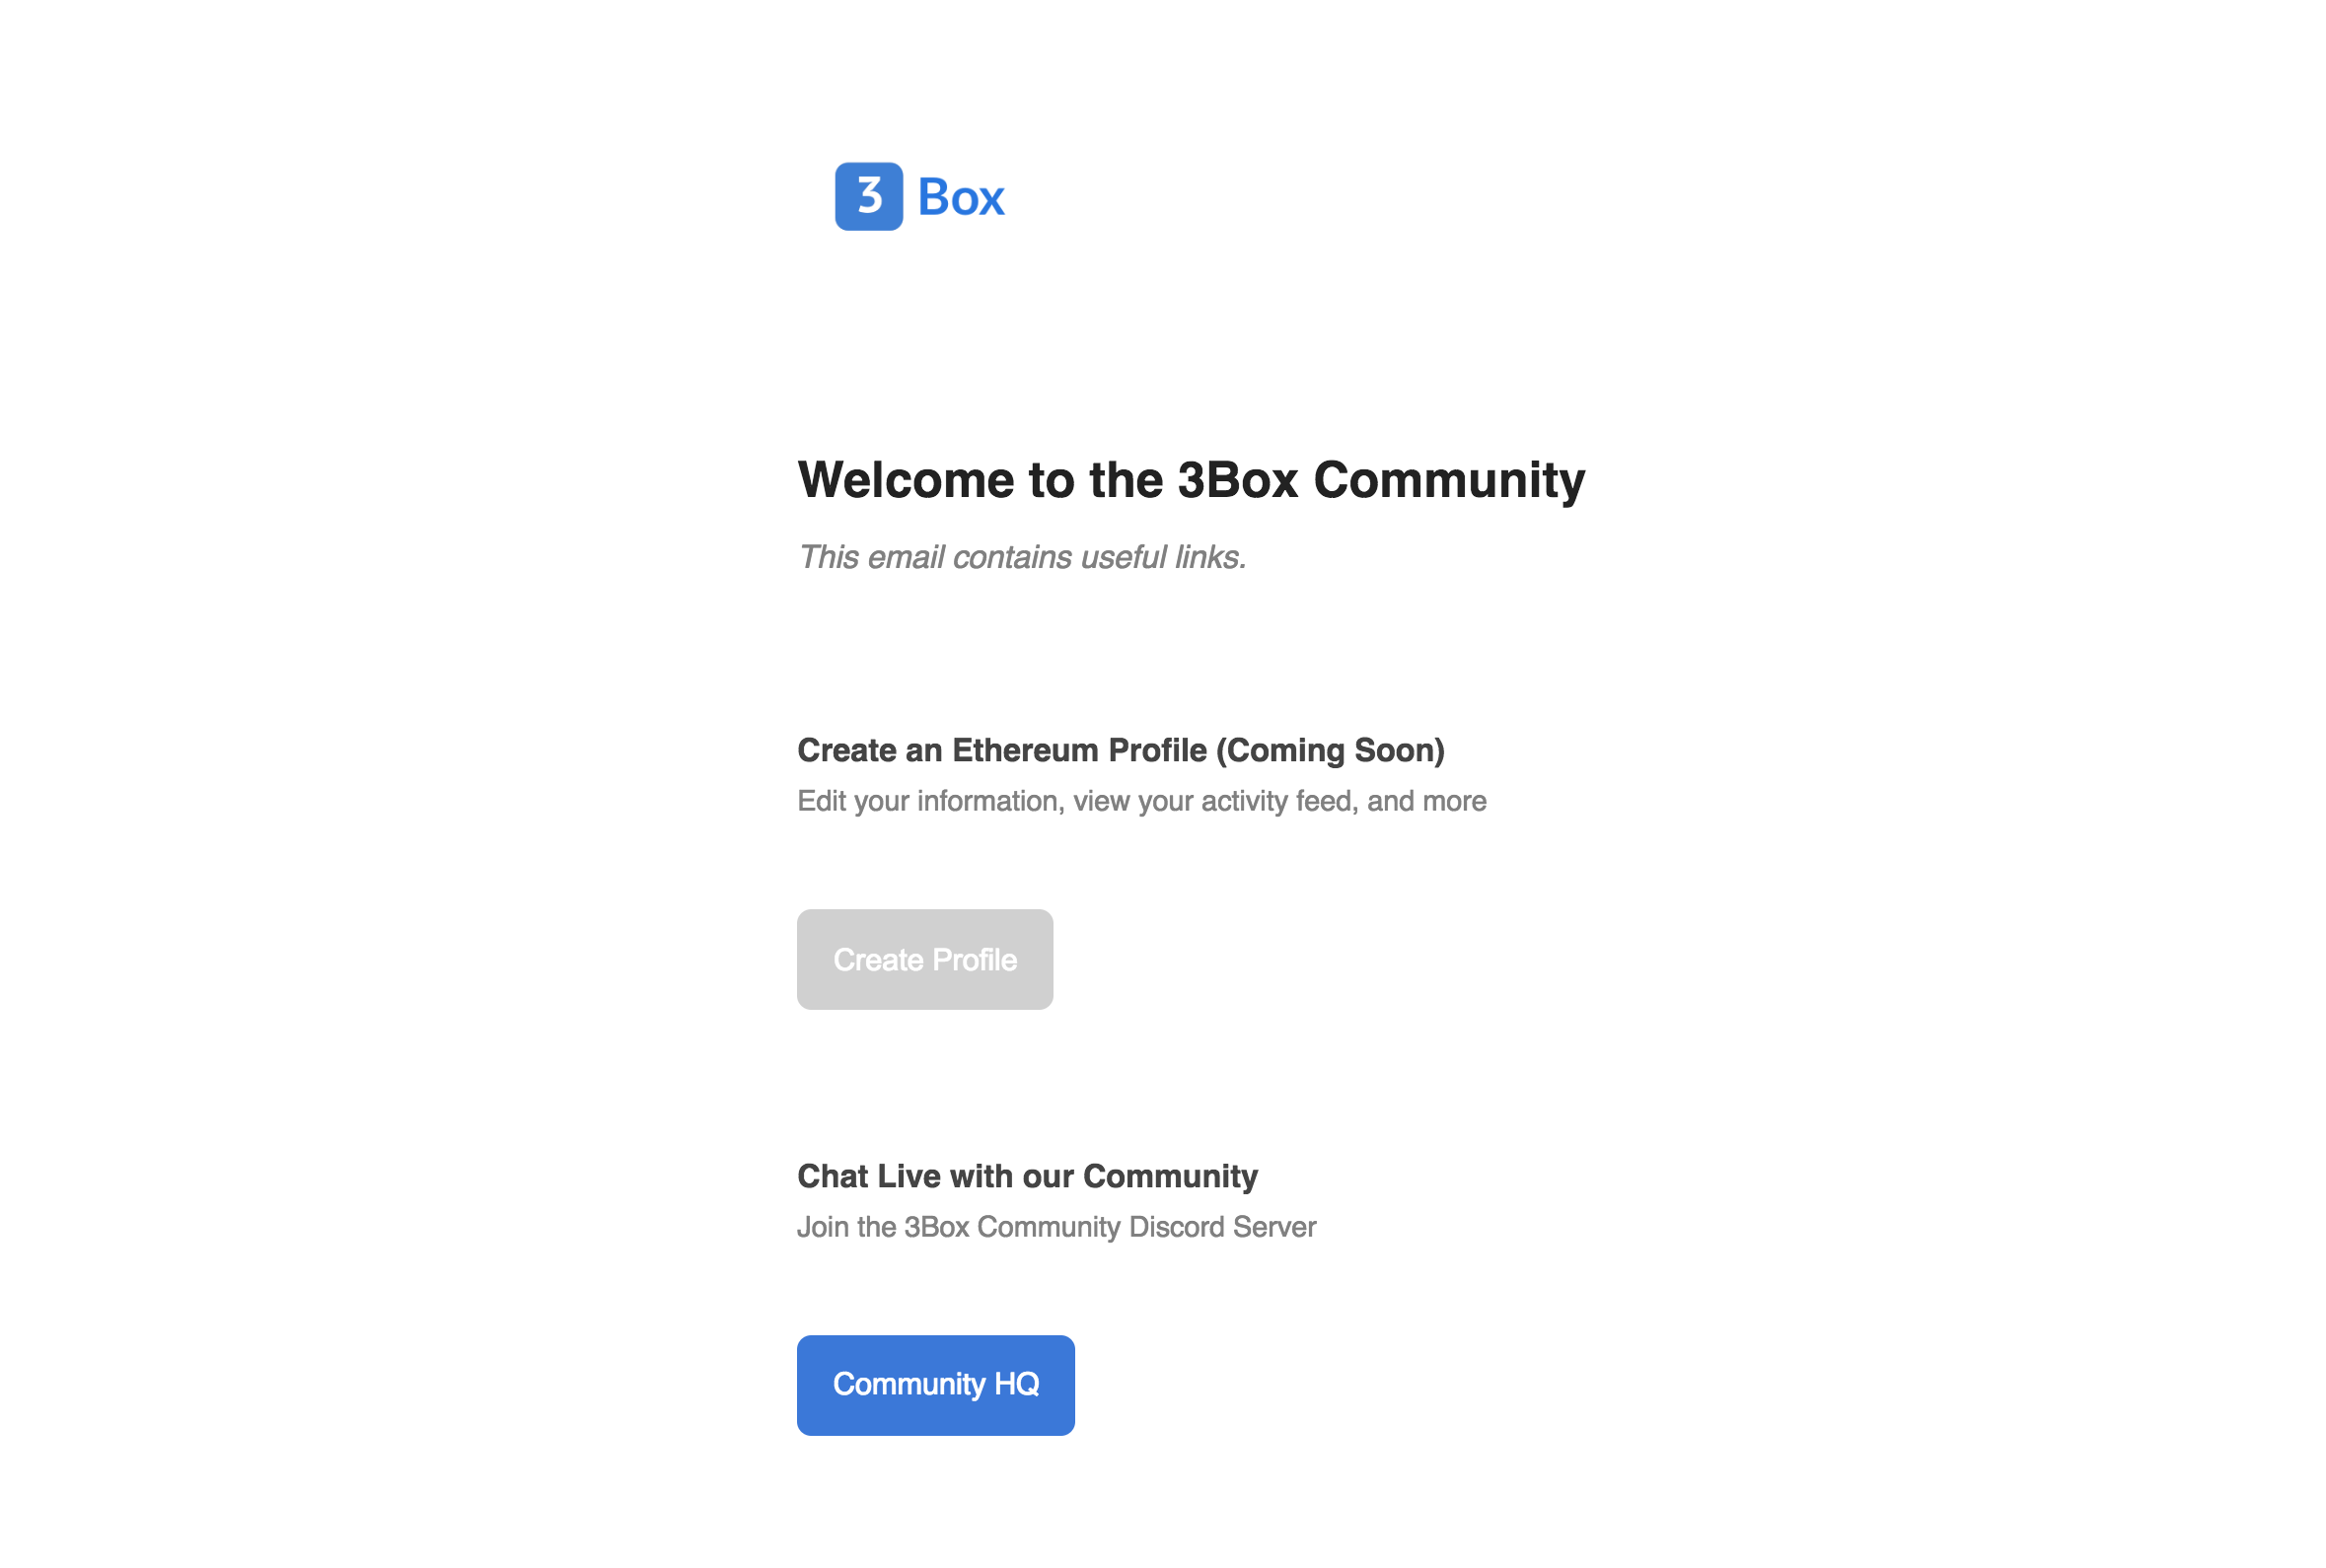 Update 3Box Community Welcome Email · Issue #427 · 3box/3box